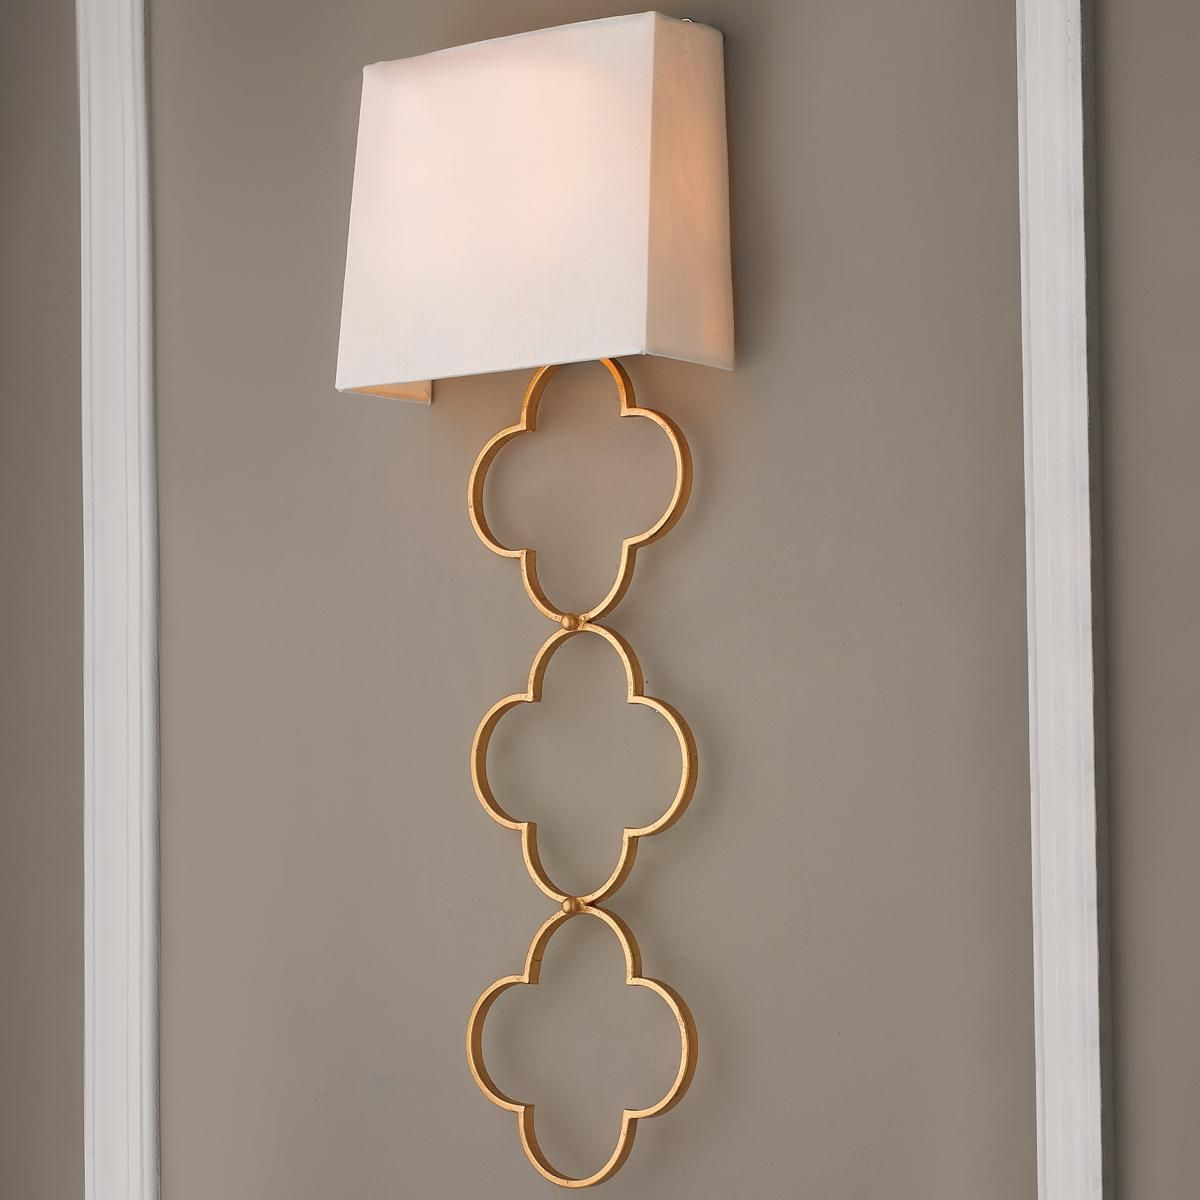 Ada Quatrefoil Chain Wall Sconce This Stunning Wall Sconce Is Sure